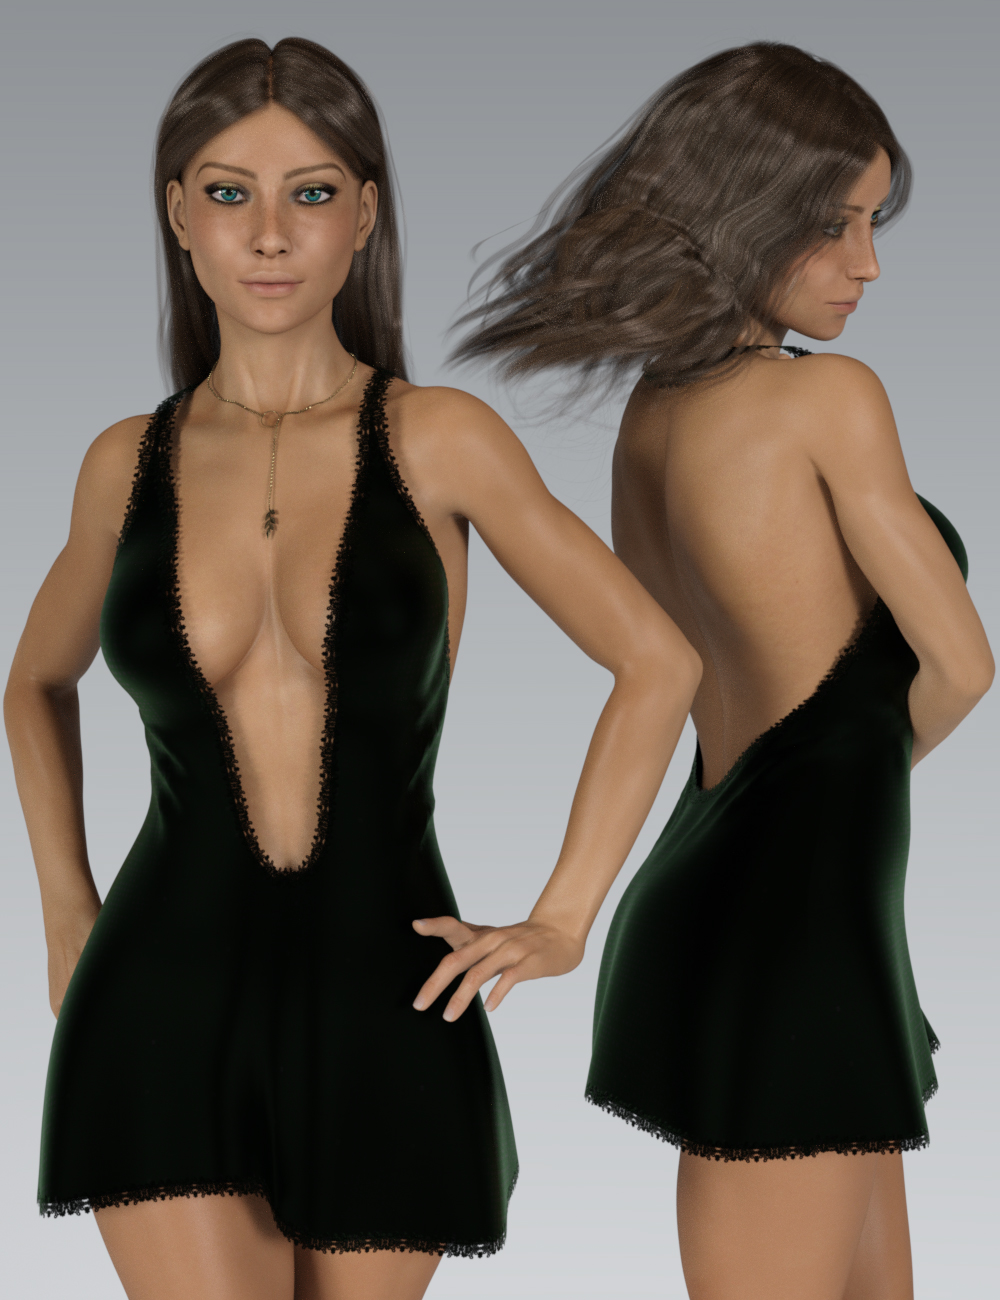 InStyle - Flirt G3F by -Valkyrie-